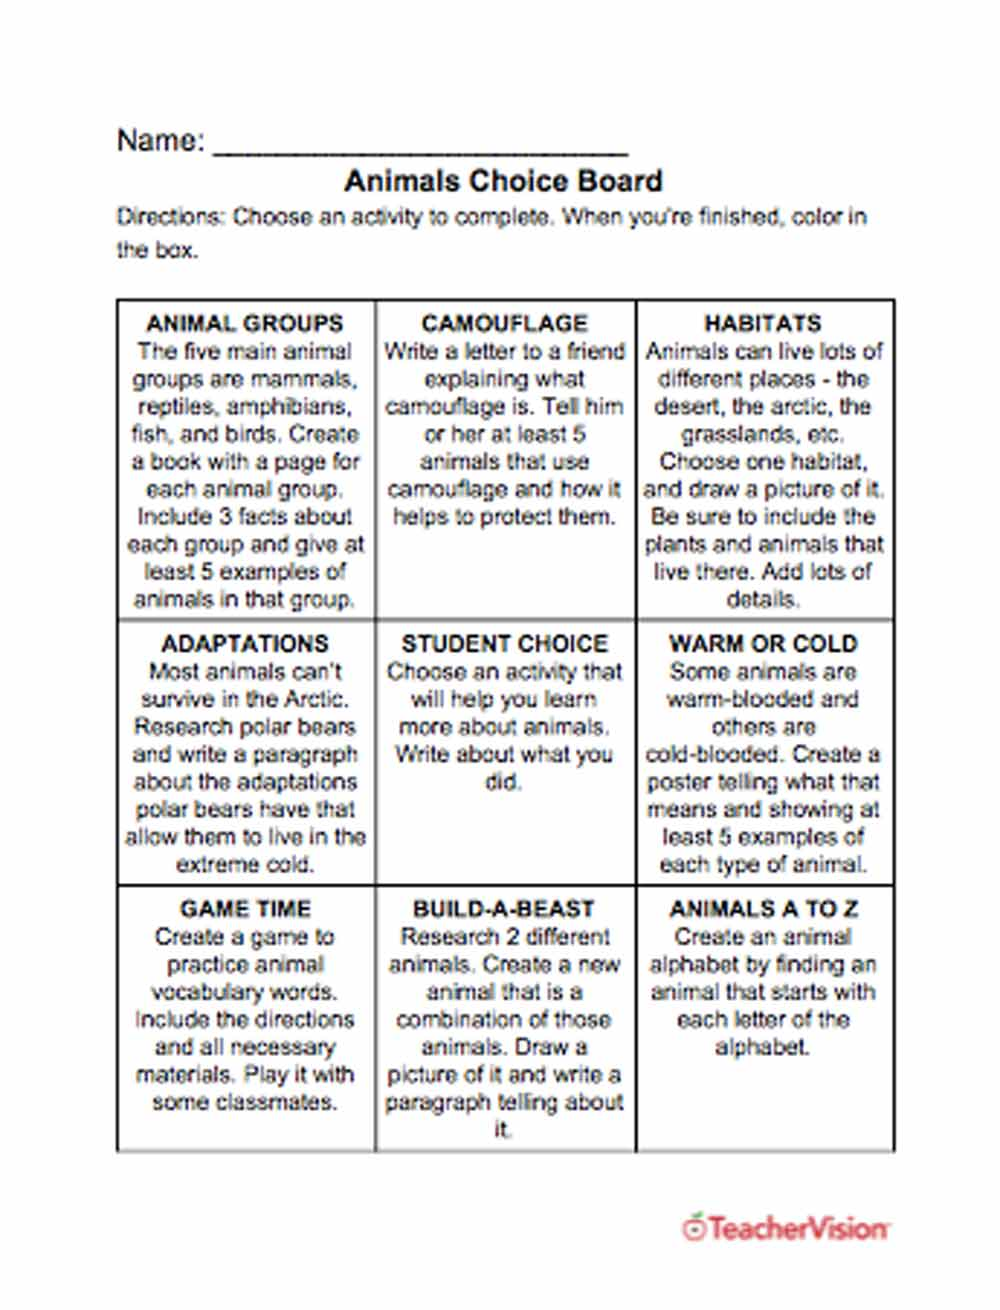 Animals Printables, Lessons, and Activities: Grades K-12